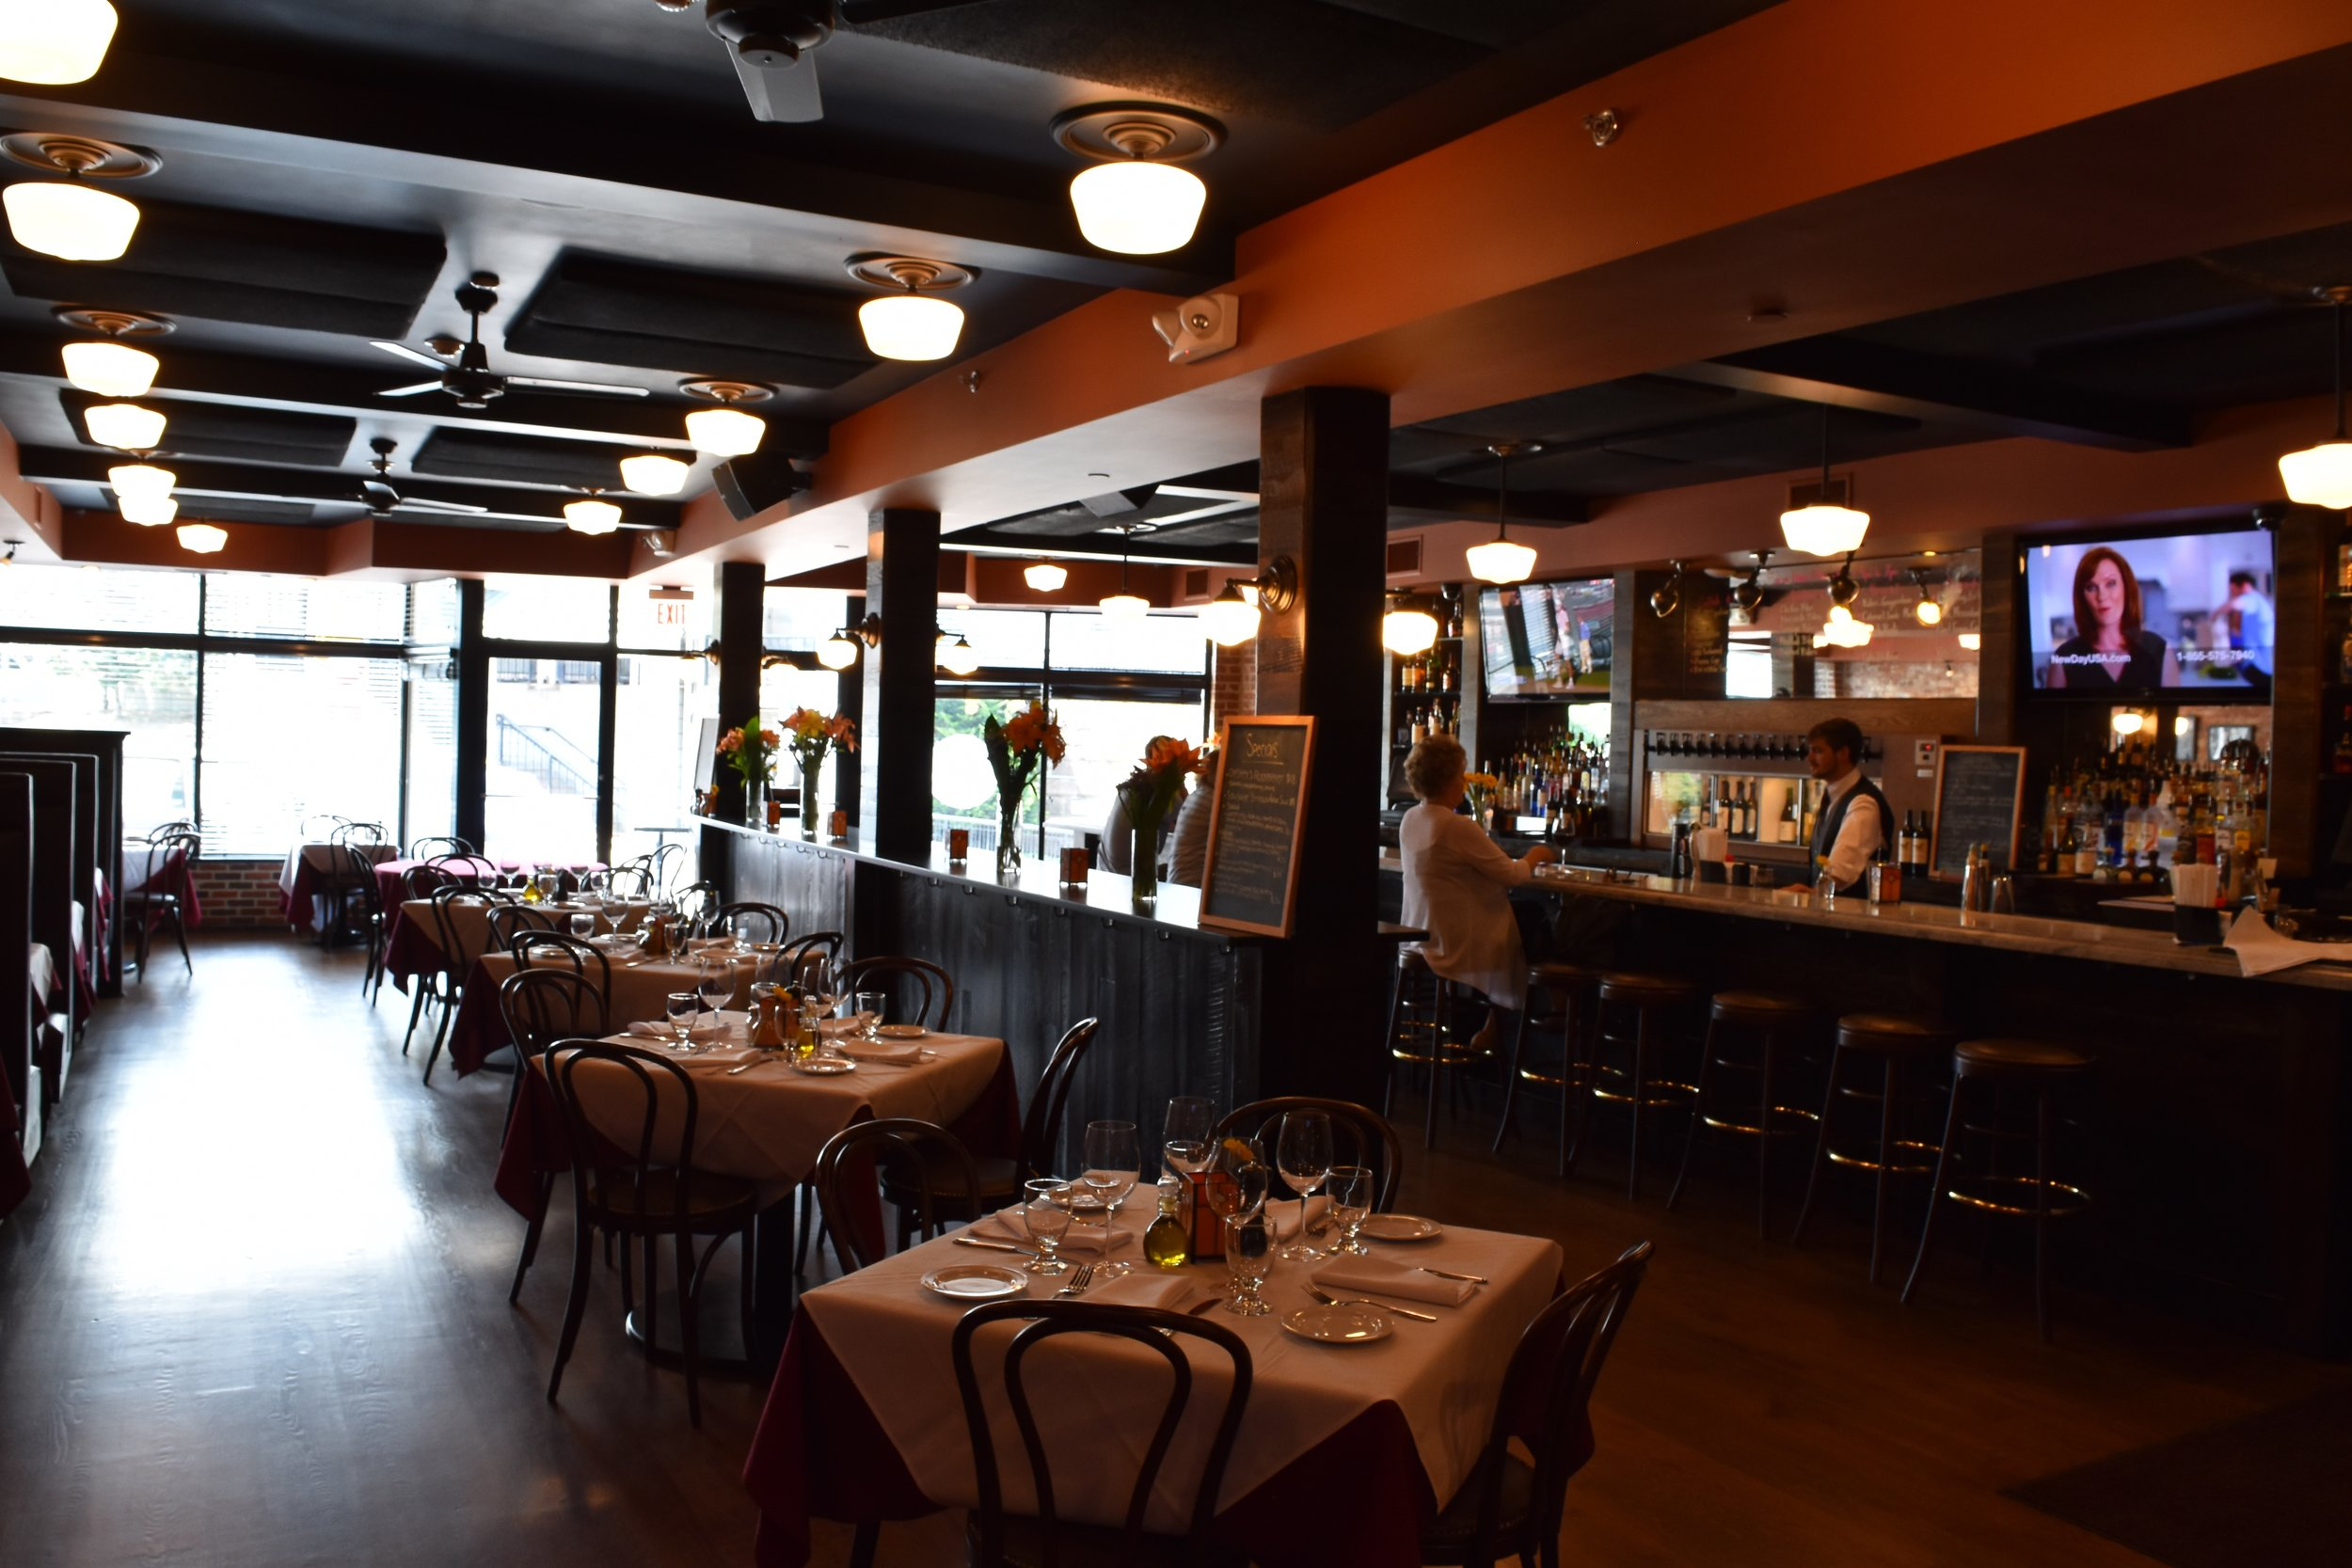 Prefer to make reservations via phone? - You can make reservations by calling our restaurant directly:Darien Reservations: 203-309-5818 To enjoy our Cos Cob location, call 203-422-2177Louie's Restaurant accepts AMEX, Visa, MasterCard and Discover credit cards.